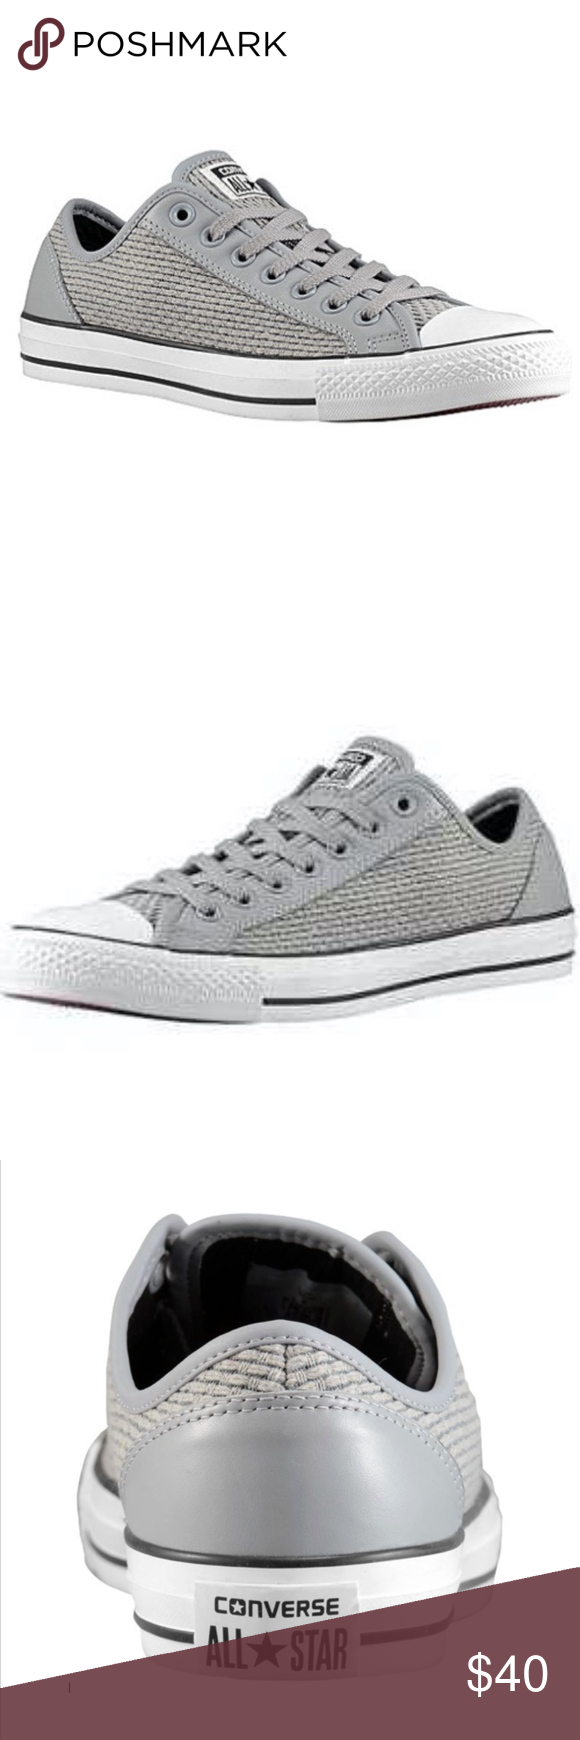 781163ed22be Converse CT Overlay OX Woven - Smoke Gray Slip into style with the Converse  All Star